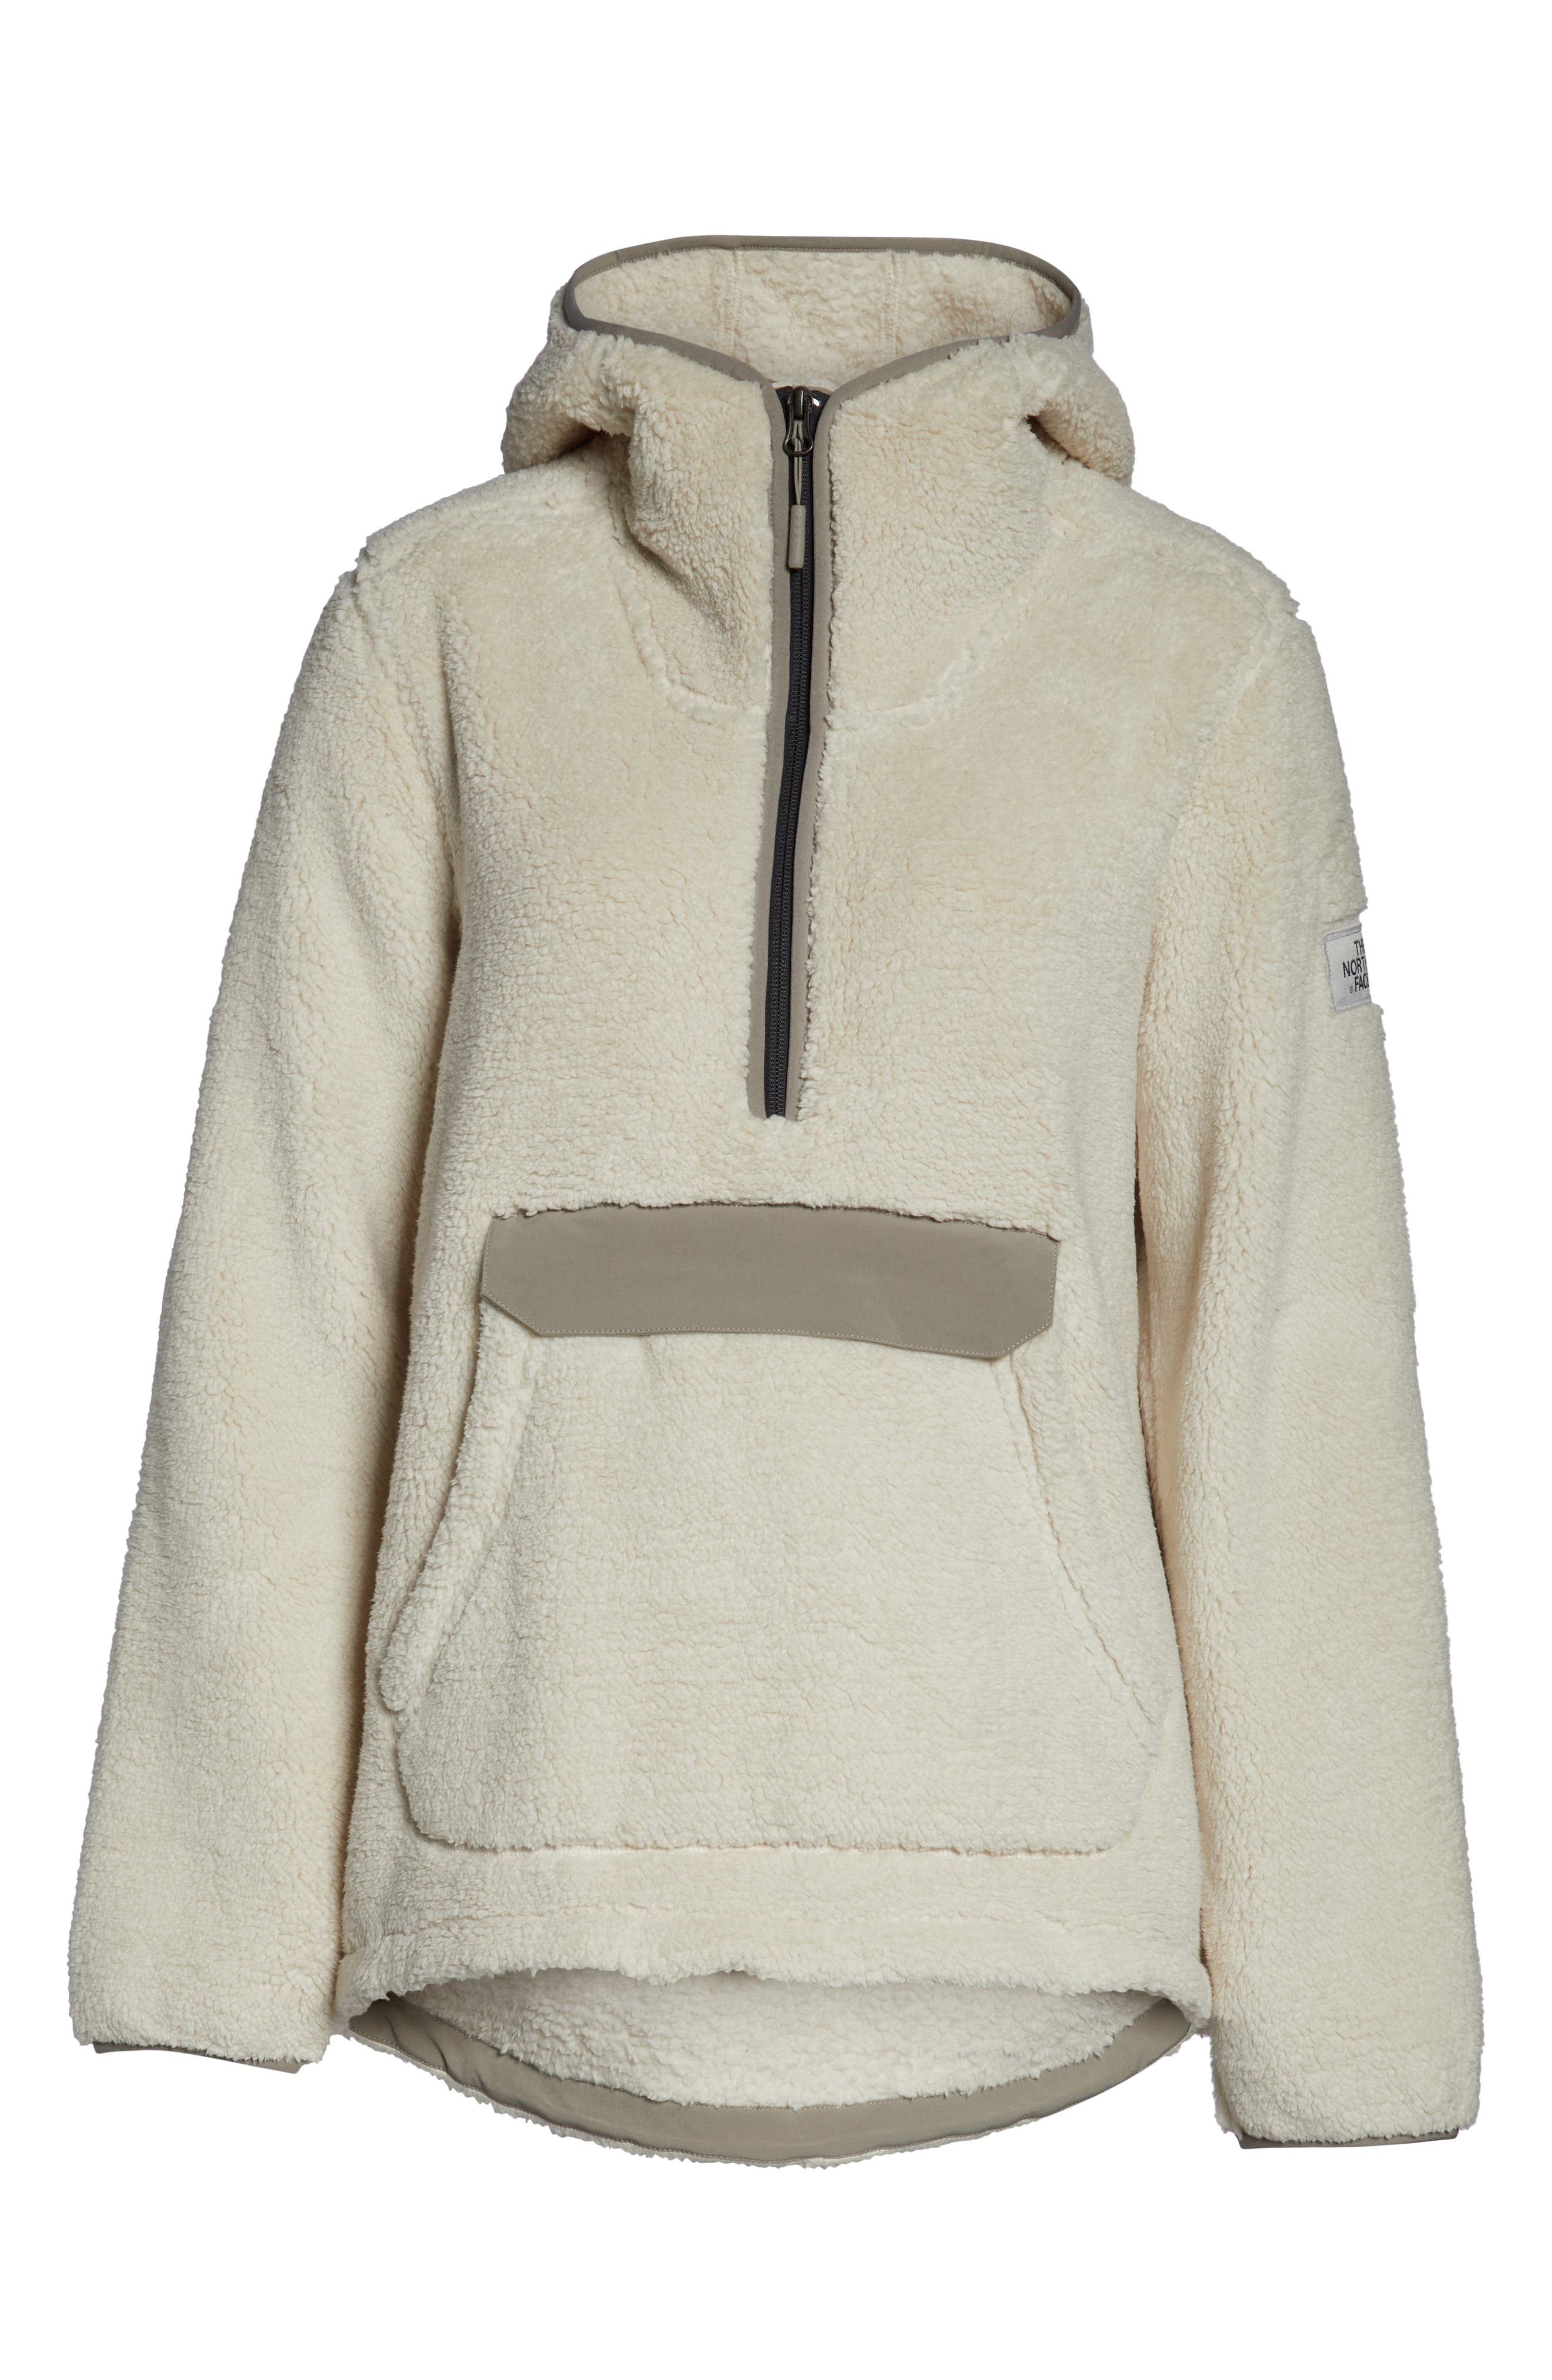 THE NORTH FACE,                             Campshire High Pile Fleece Pullover Hoodie,                             Alternate thumbnail 7, color,                             VINTAGE WHITE/ GREY